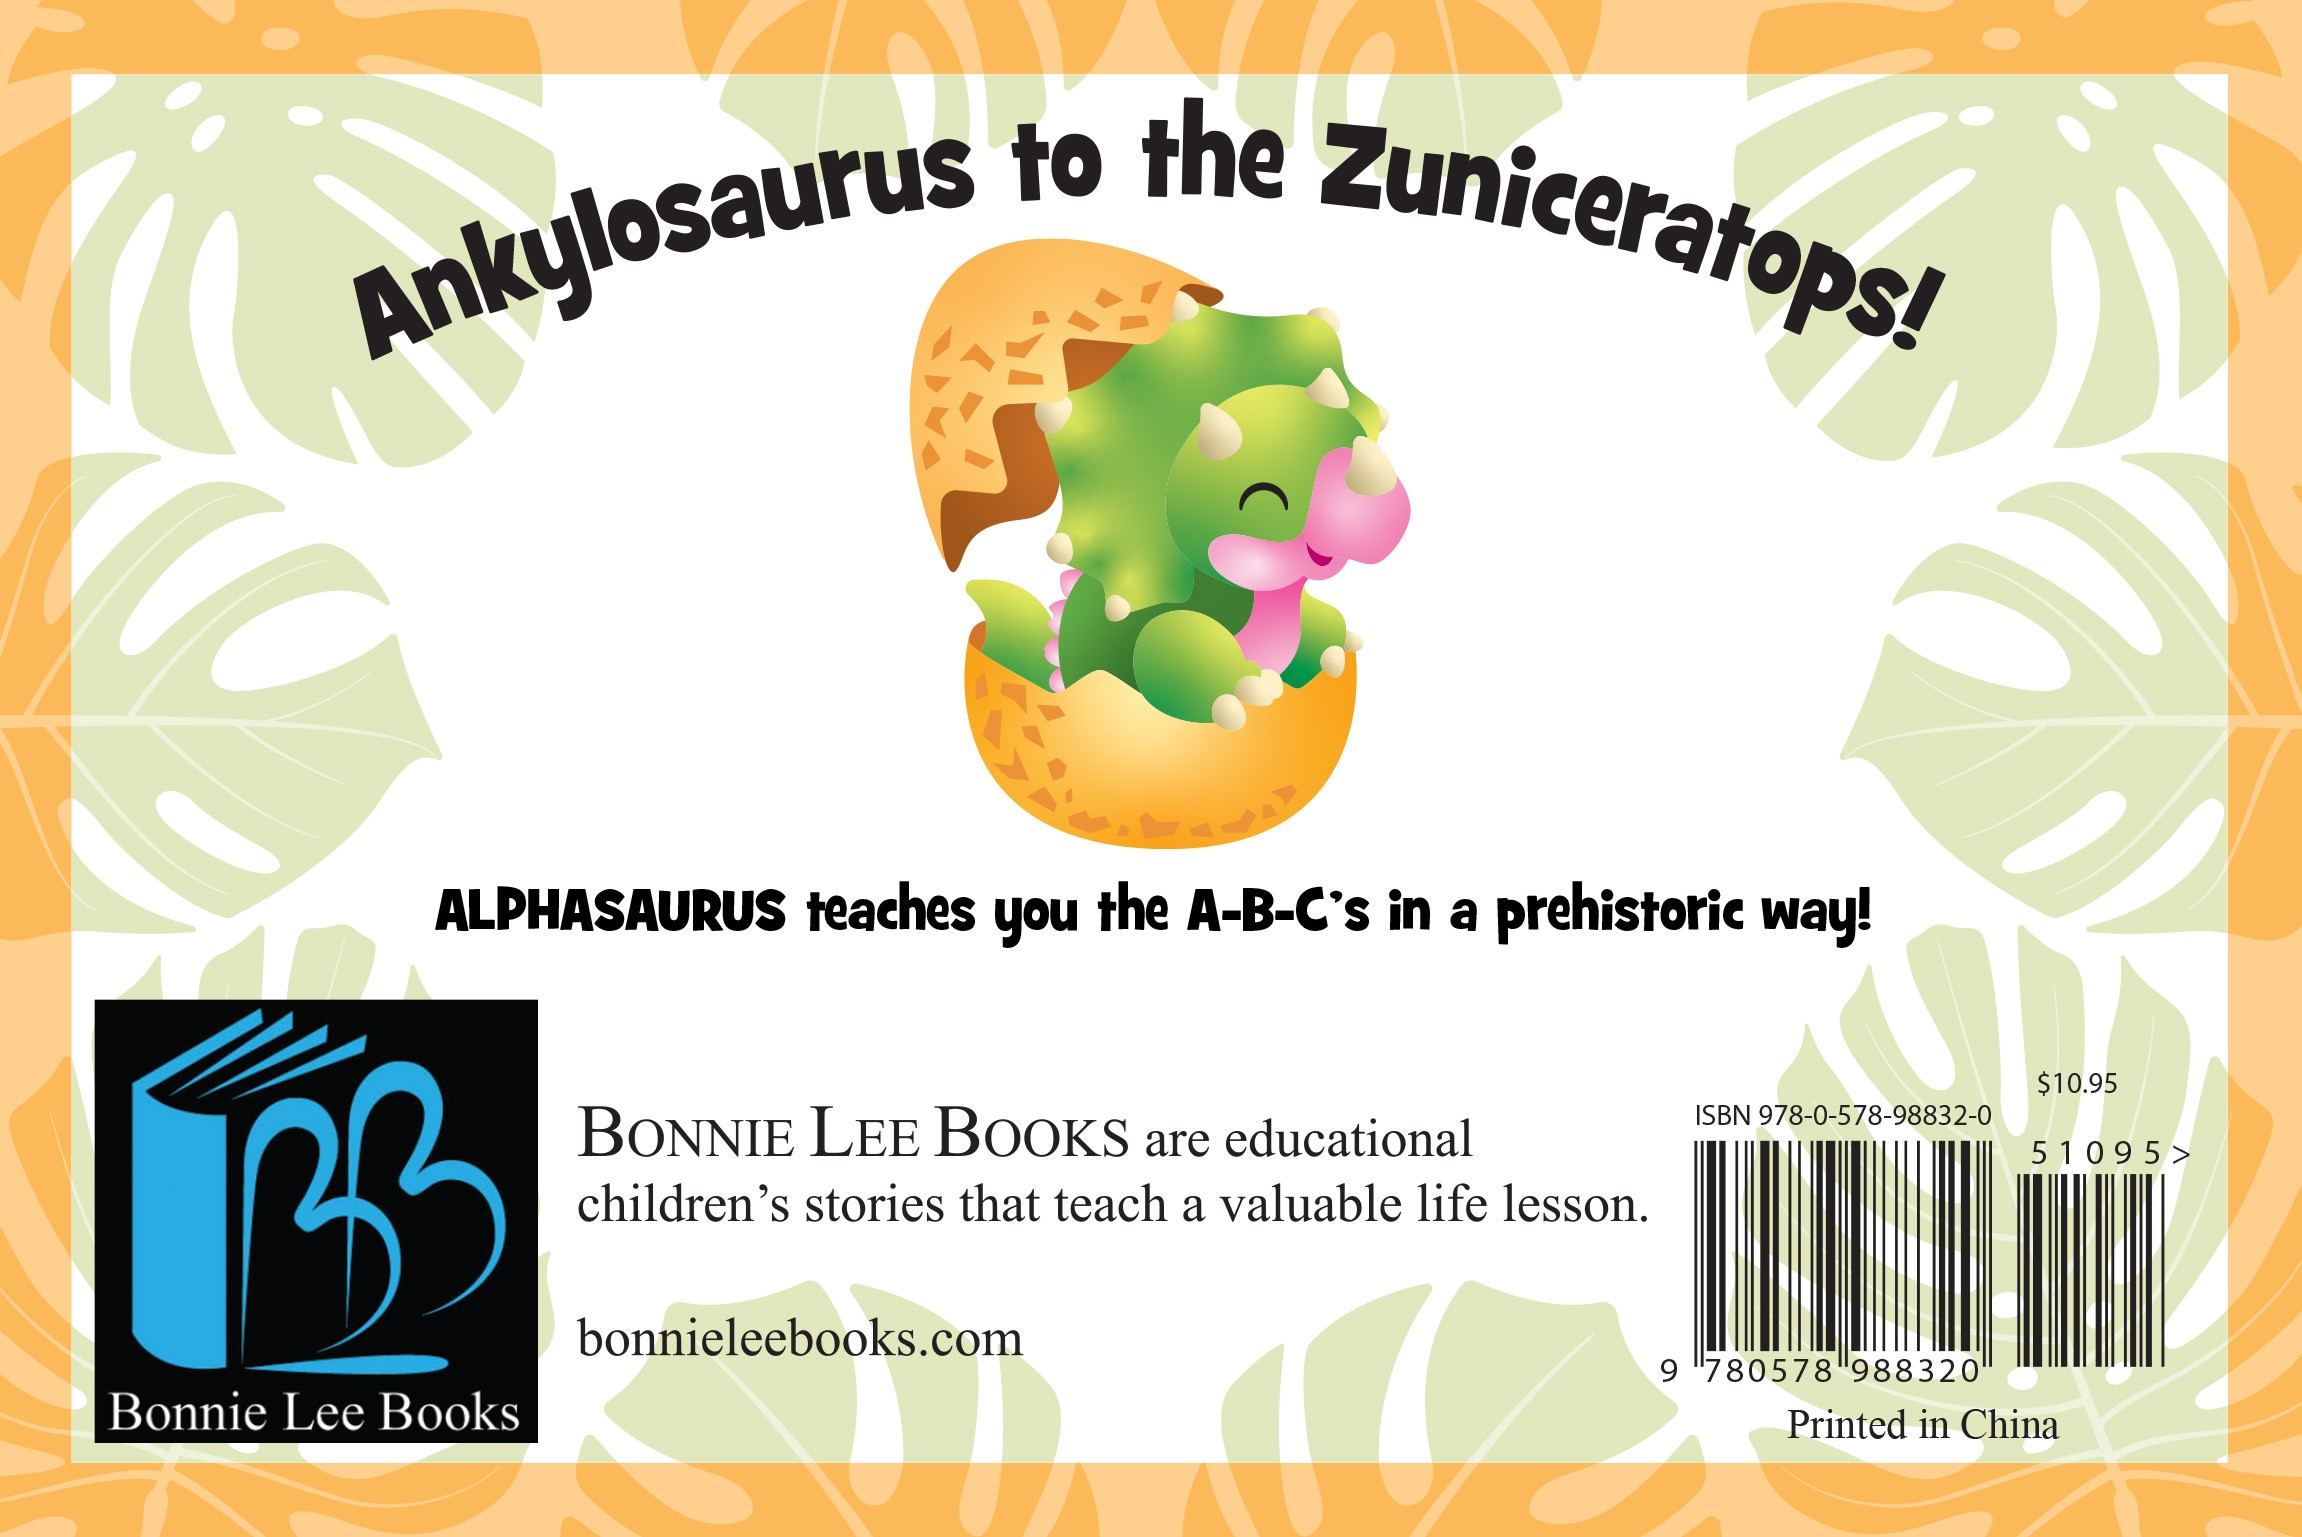 Anklyosaurus to the Zuniceratops. ALPHASAURUS by Peter Zafris teaches your child the A-B-C's in a prehistoric way!